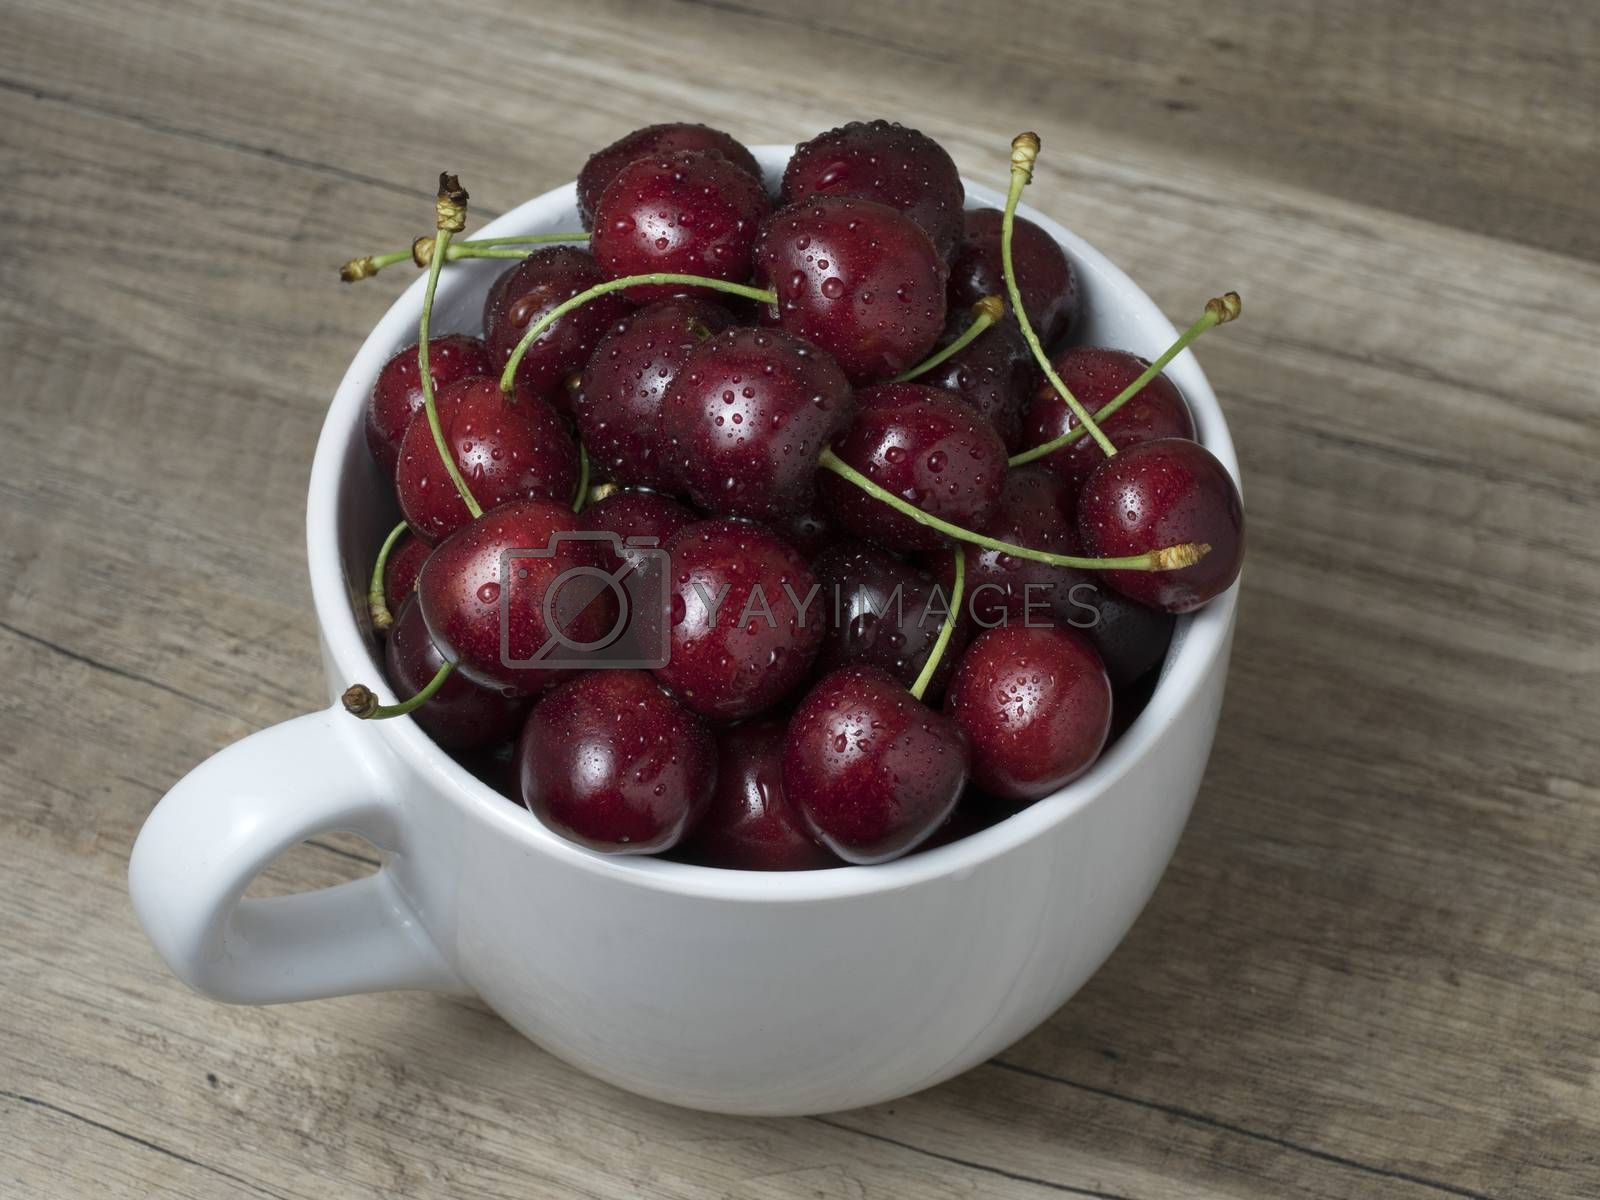 Royalty free image of Fresh ripe cherries in a cup, on wooden background.  by phortcach